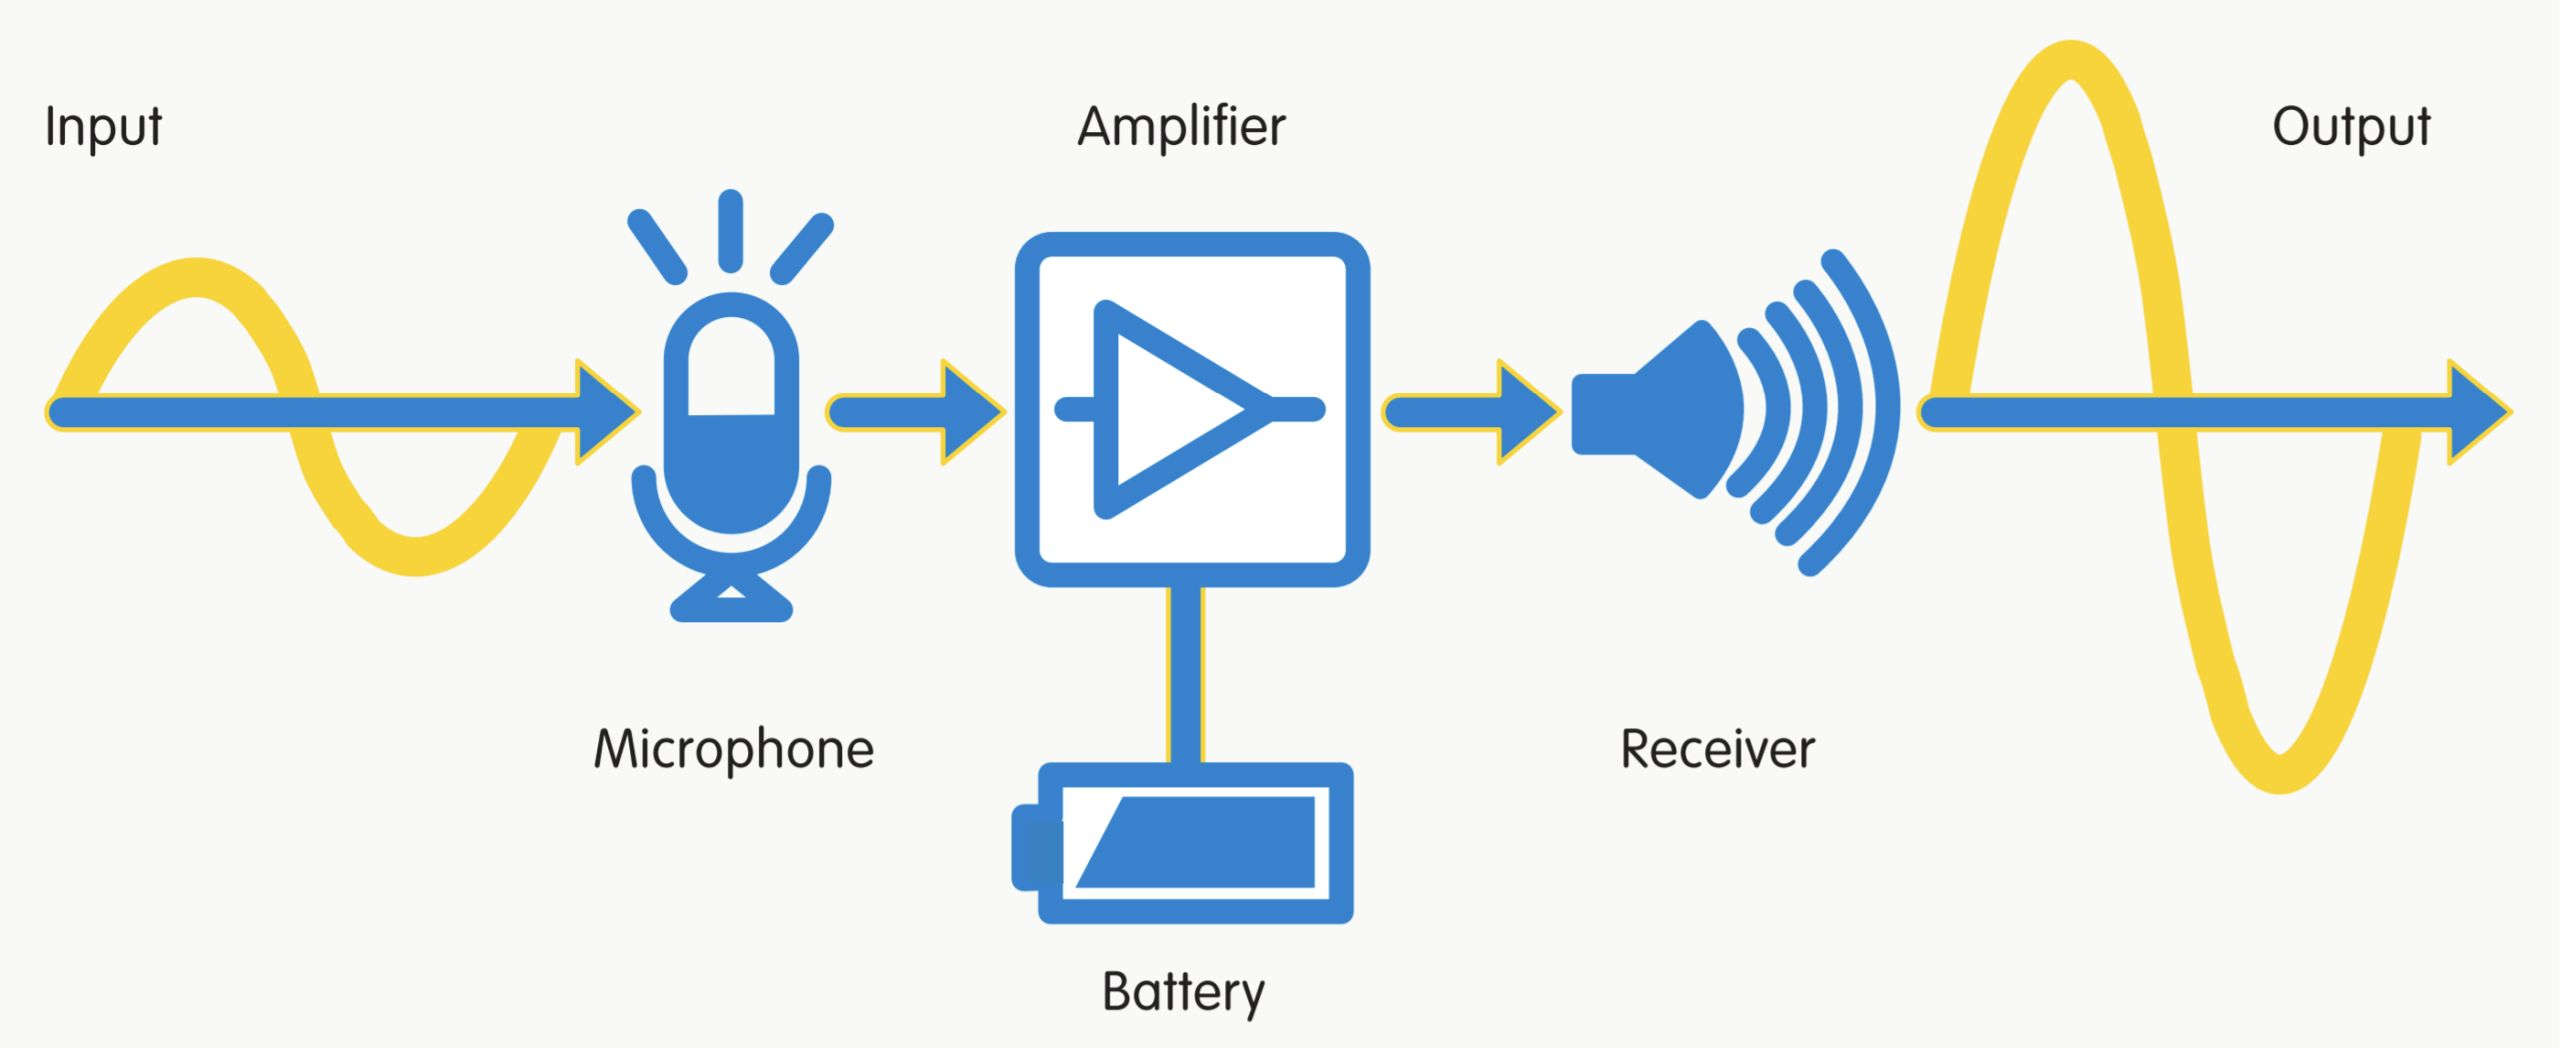 An illustration of how hearing aids work, using a microphone, amplifier, receiver, and battery to process incoming acoustic signal and output amplified sound.